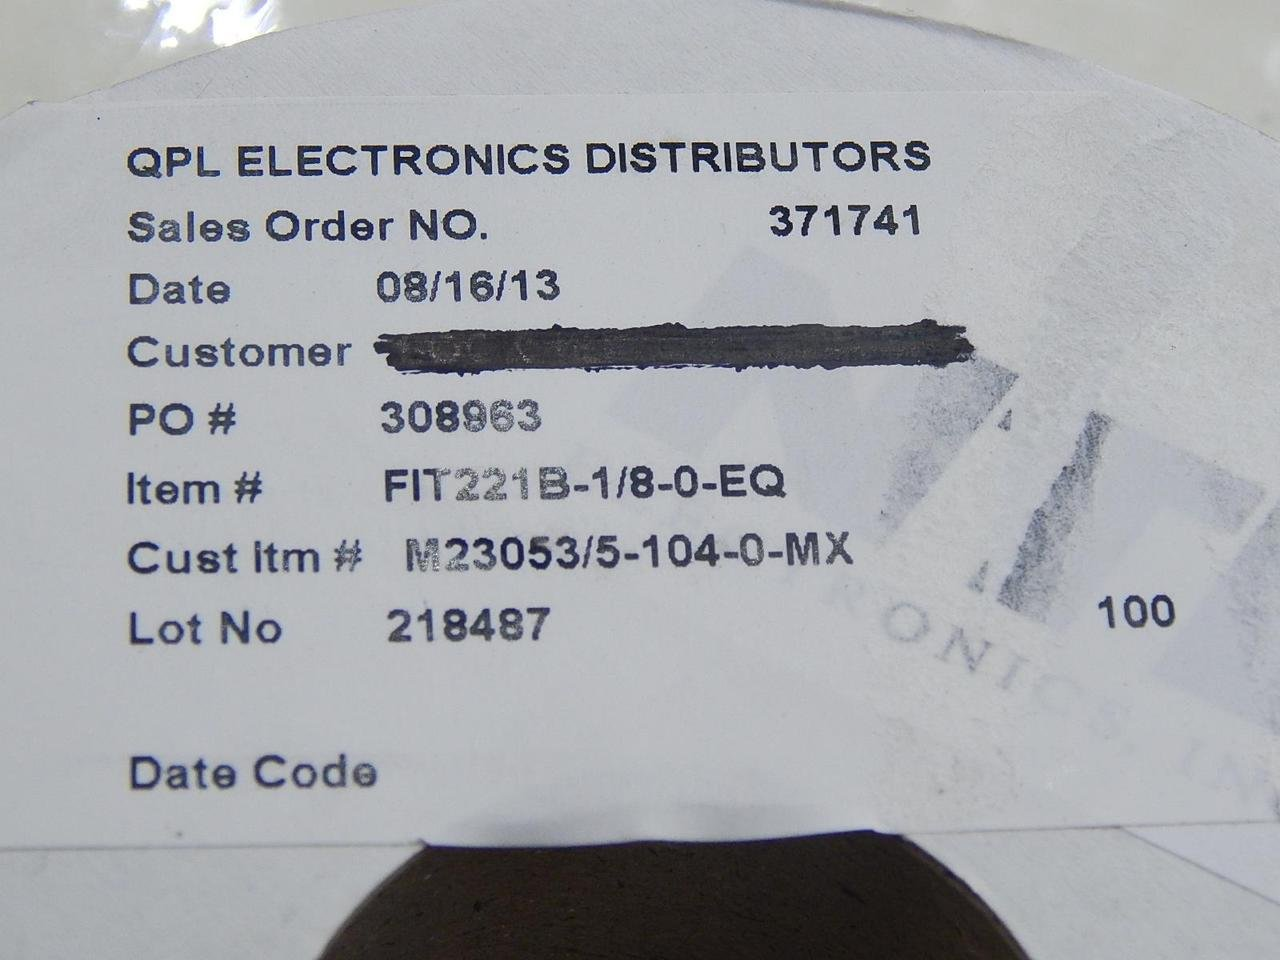 QPL Electronics Distributors FIT221B-1/8-0-EQ, 47-103100-BK